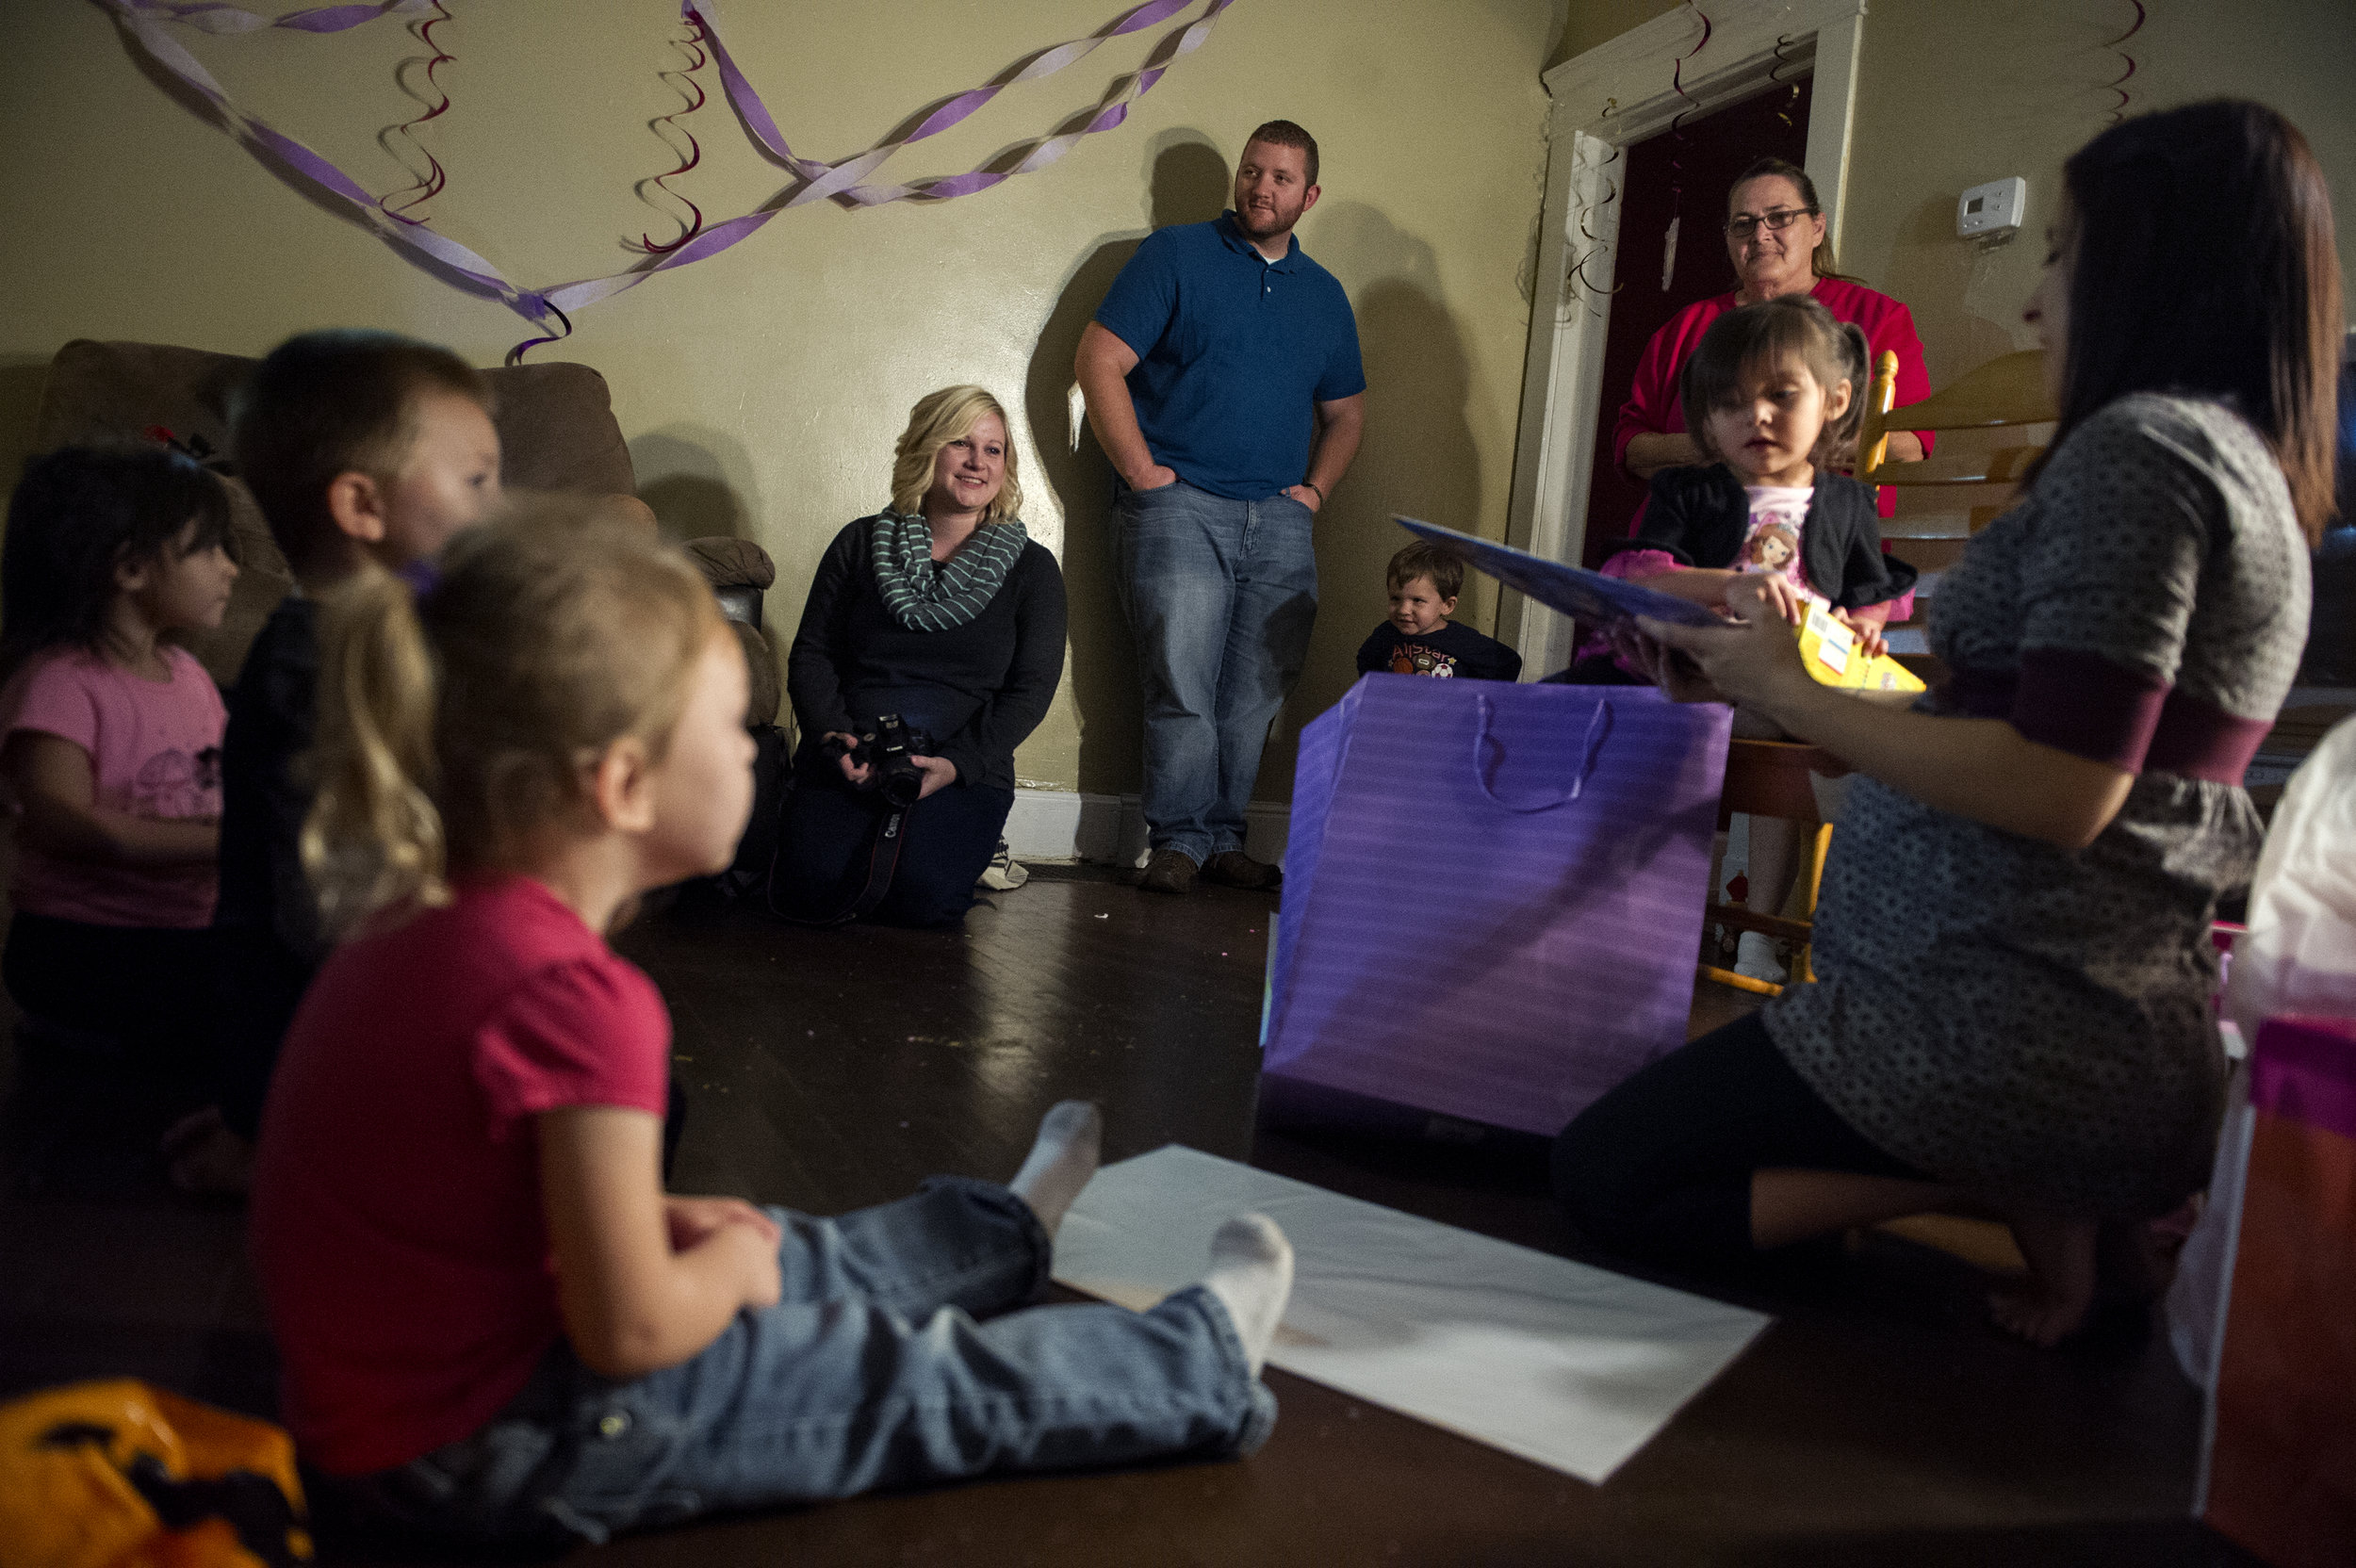 """Erickia Wilson (center left) and her husband Michael Wilson (center right) watch as Angelica, the birthmother of the child they will adopt, helps her daughter Prisilla, 3, open presents at her birthday party at Angelica's home in Evansville Friday Oct. 24, 2014. Erickia said for her and Michael this experience is about more than their baby, it is about two families becoming one,""""We have fallen in love with all of them as a whole.""""  Michael and Erickia Wilson have been trying to have children for seven years. In May, after six miscarriages, one failed adoption and a lot of heart break they met Angelica, a mother of two who was not financially prepared to take care of the baby she was carrying. After meeting once, Angelica agreed to place her baby in an open-adoption in the Wilson's home. The couple decided to try one more time to parent a child."""